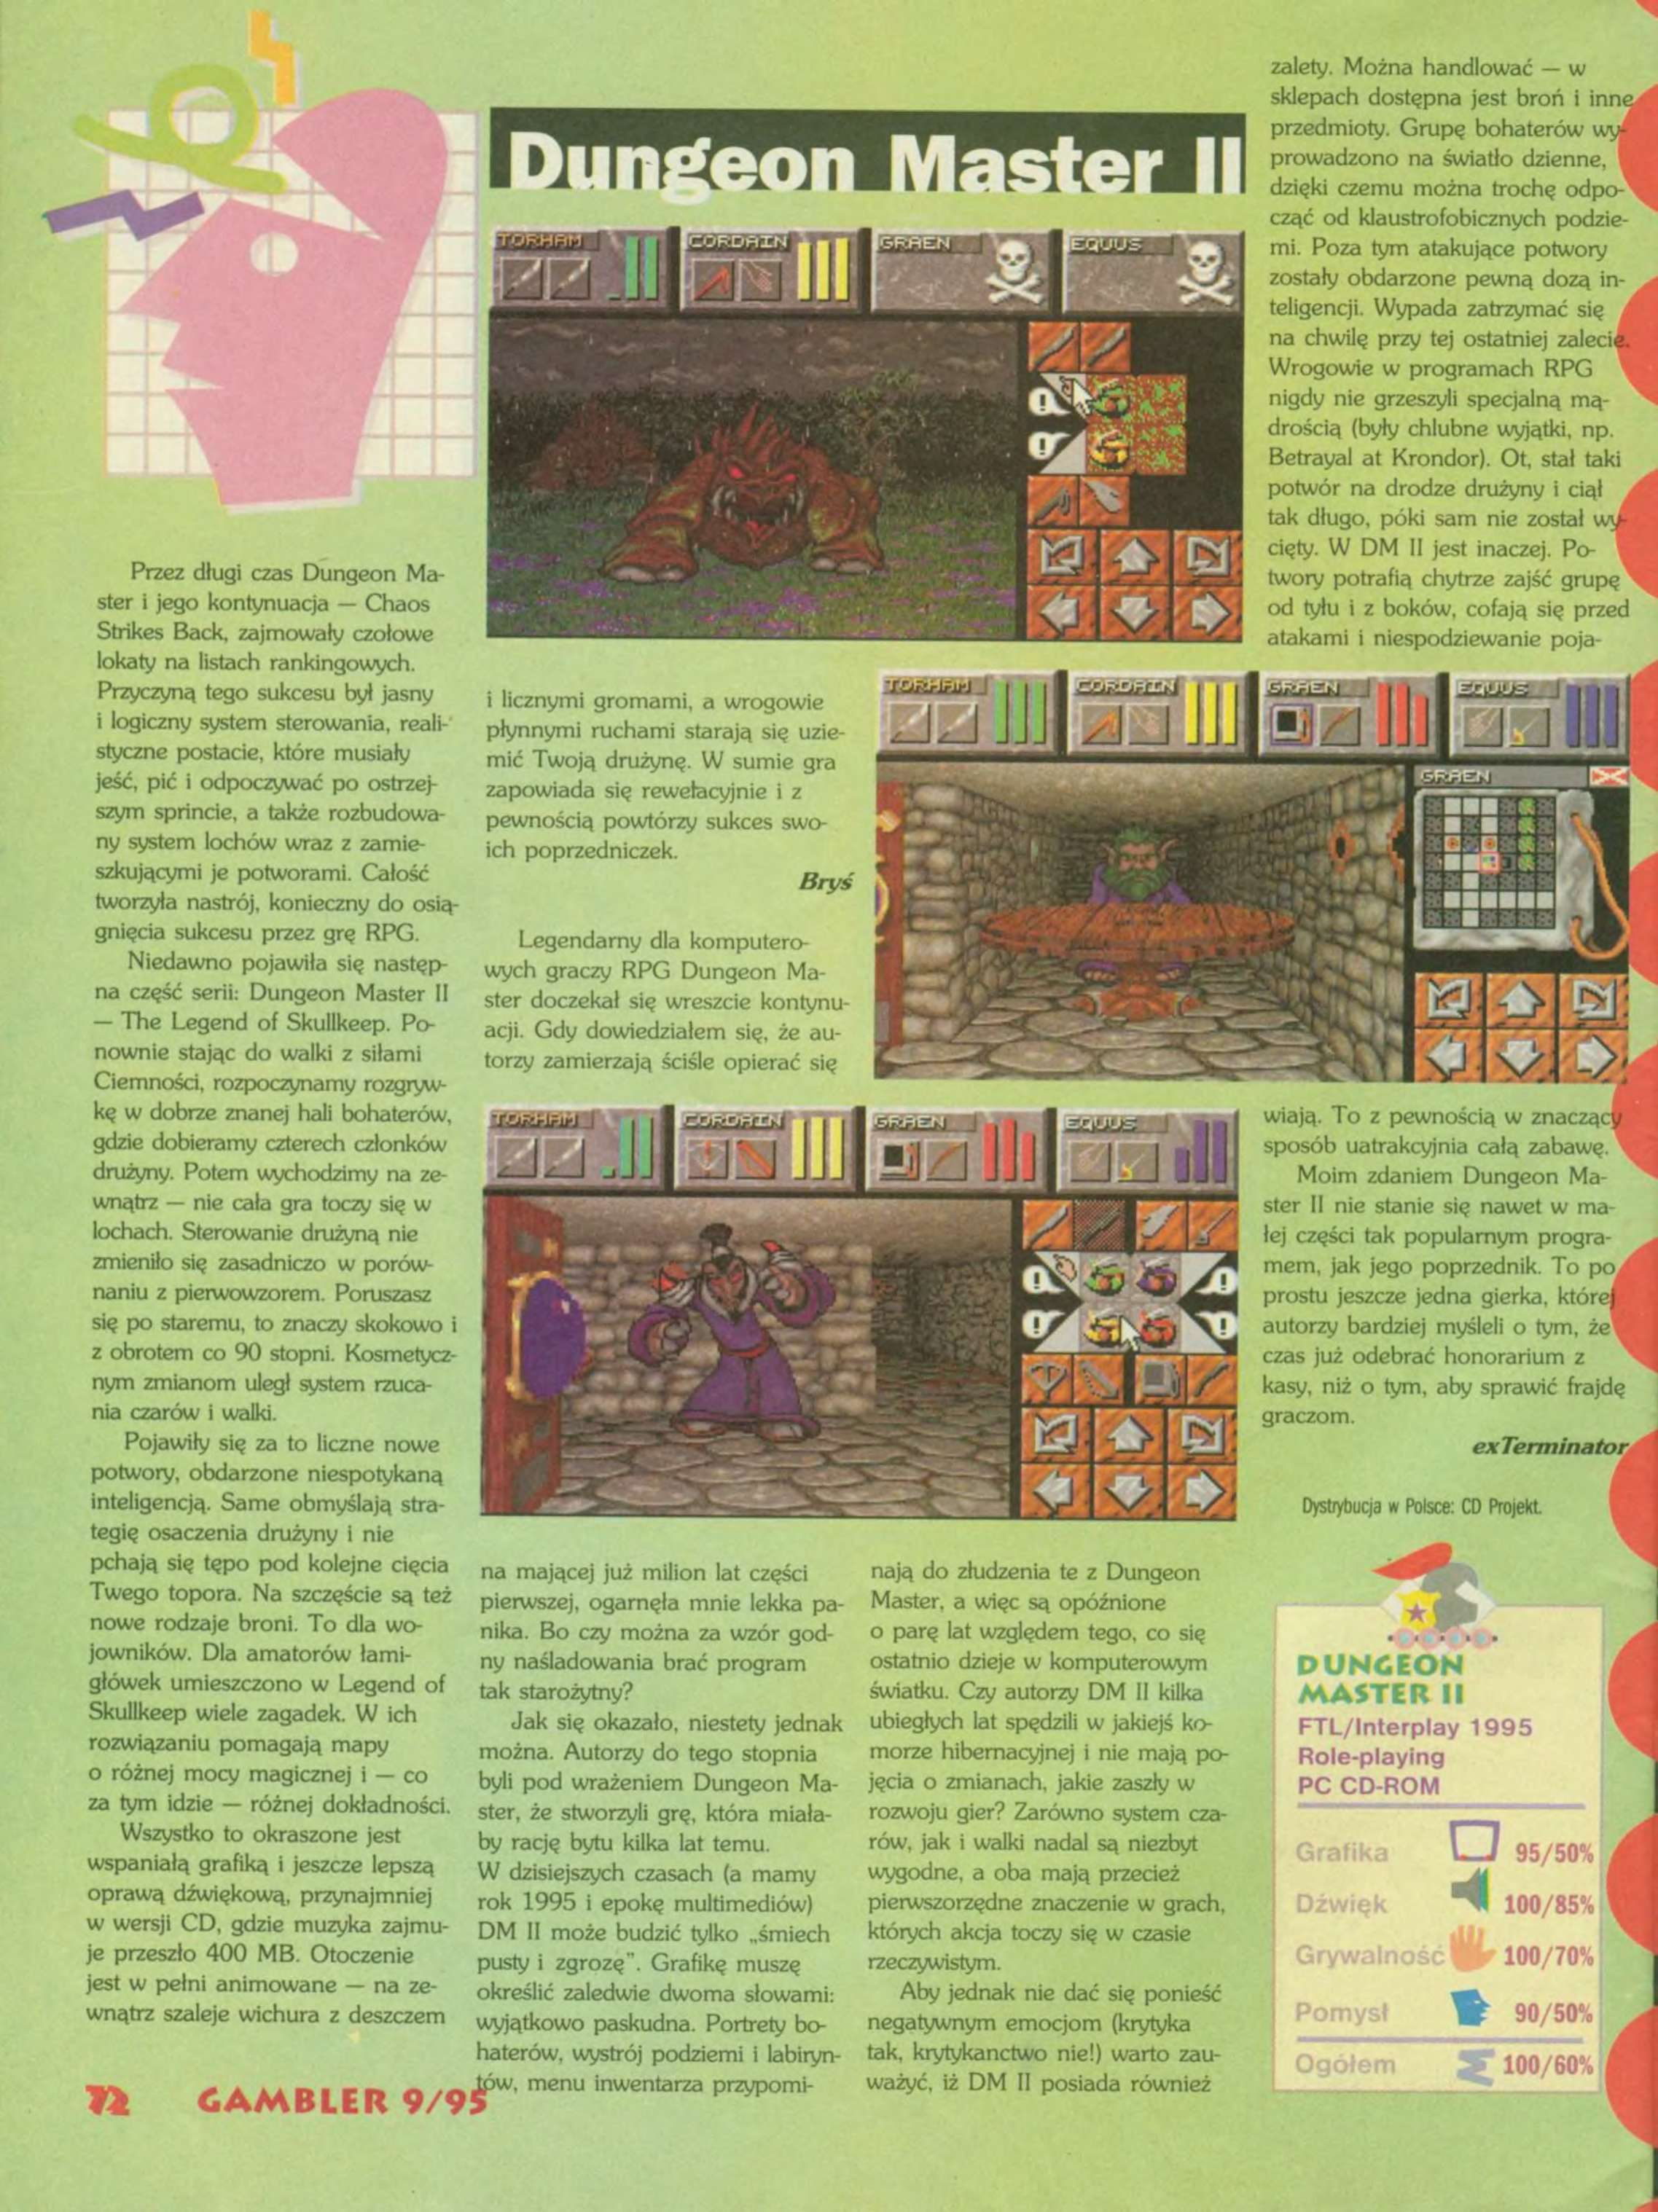 Dungeon Master II Review published in Polish magazine 'Gambler', September 1995, Page 72